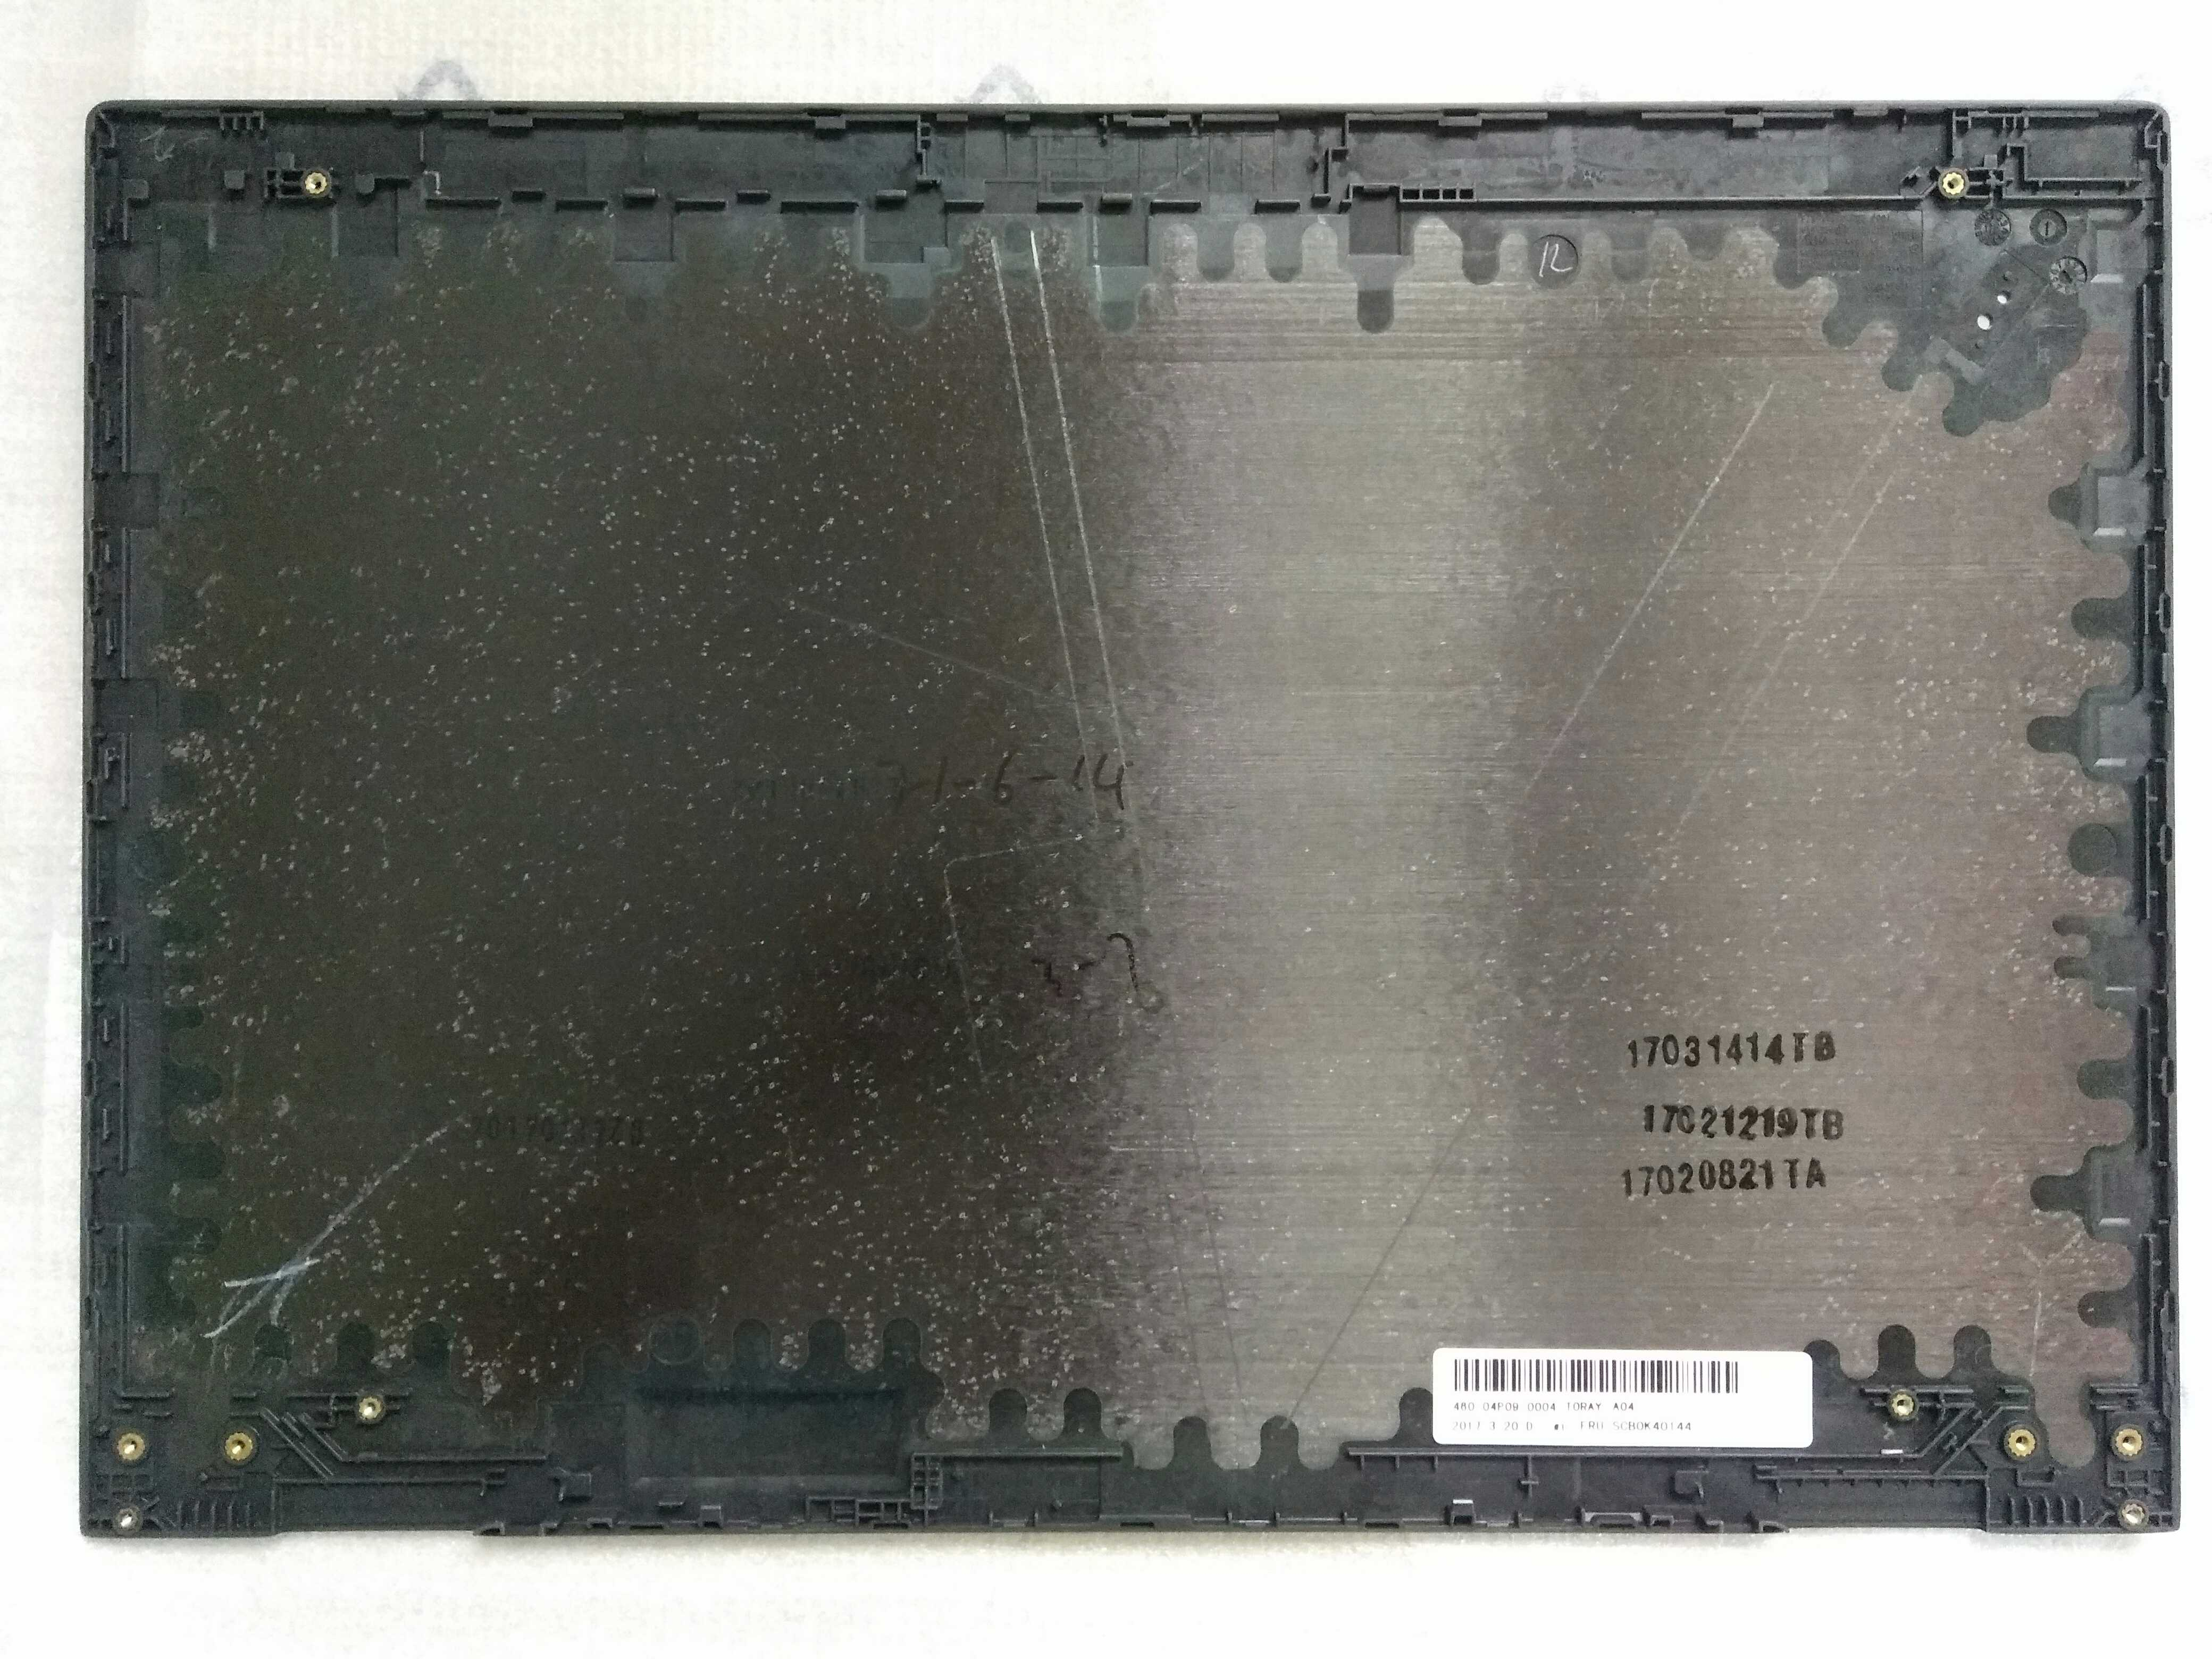 For Lenovo Thinkpad X1 carbon 4 Gen 20FB, 20FC Lcd Rear Back cover 01AW967 01AW992